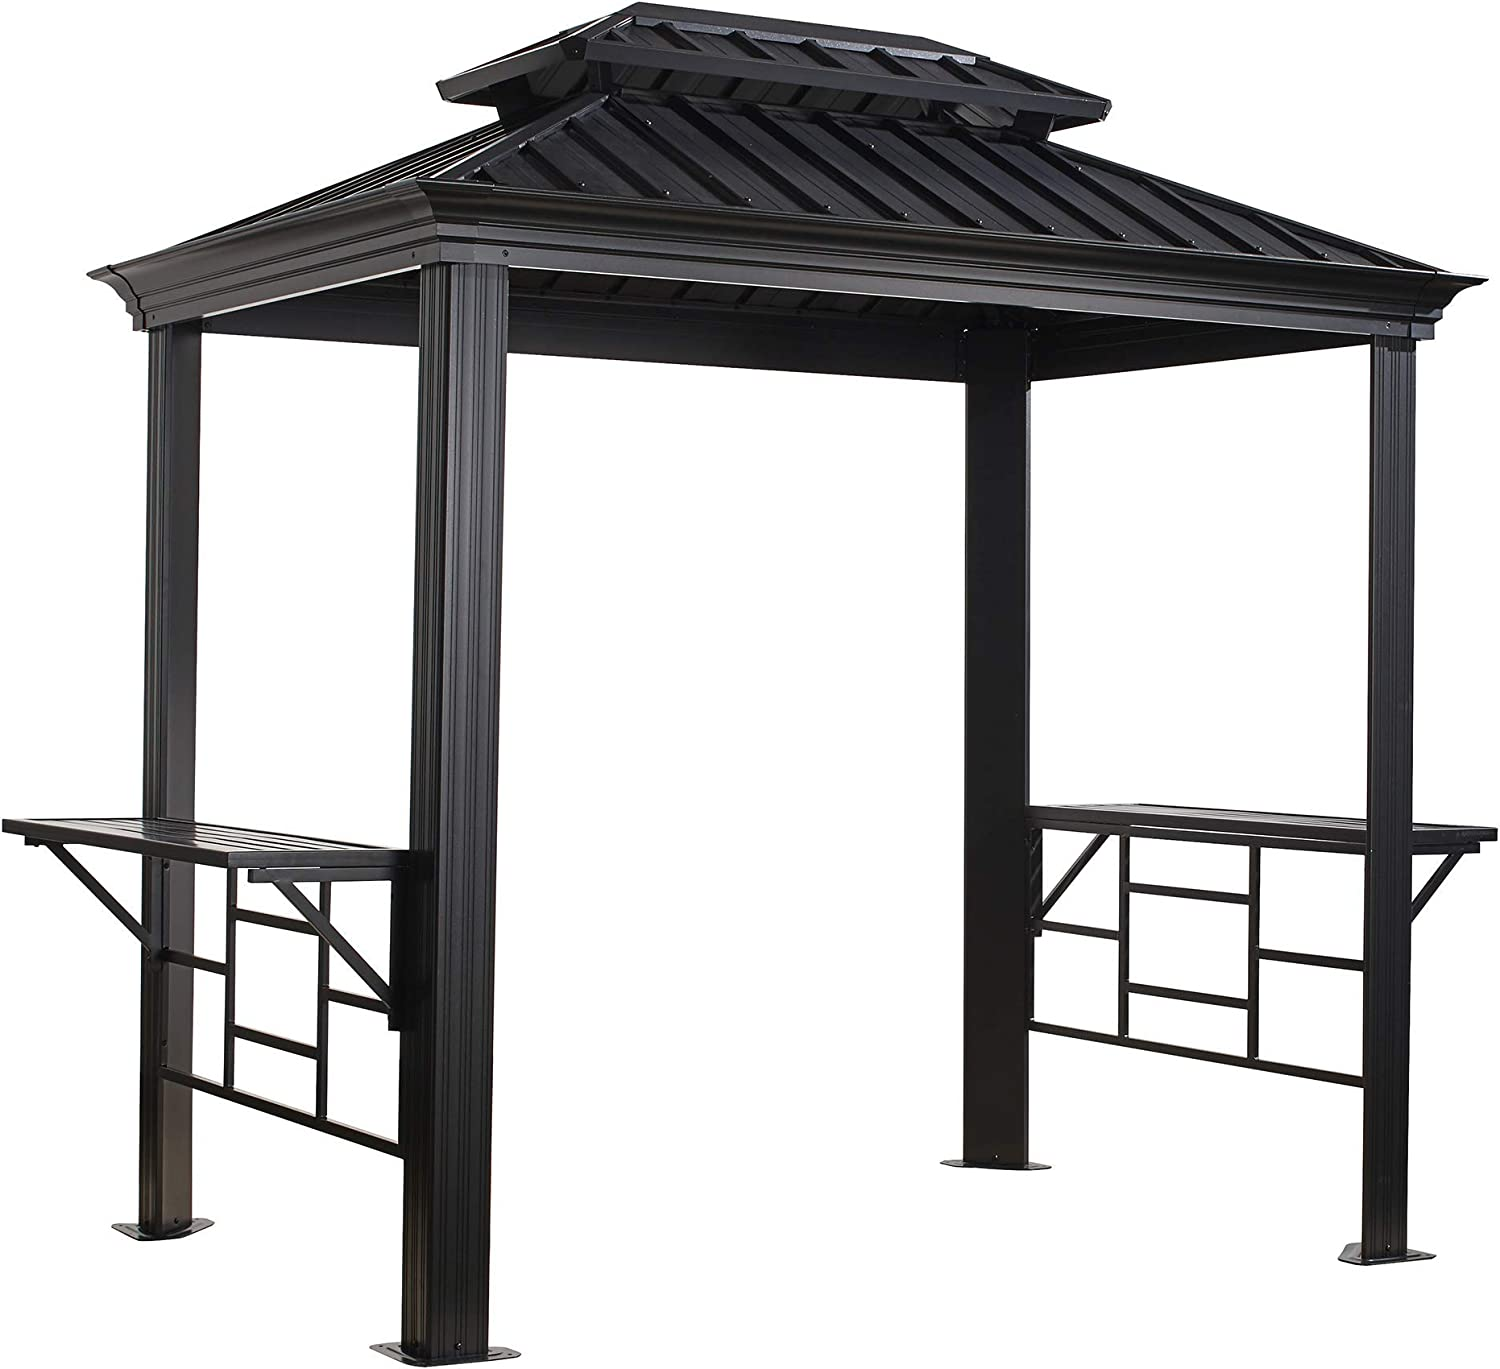 Amazon Com Sojag Outdoor 6 X 8 Messina Grill Steel Hardtop Gazebo With Shelving Dark Grey Garden Outdoor